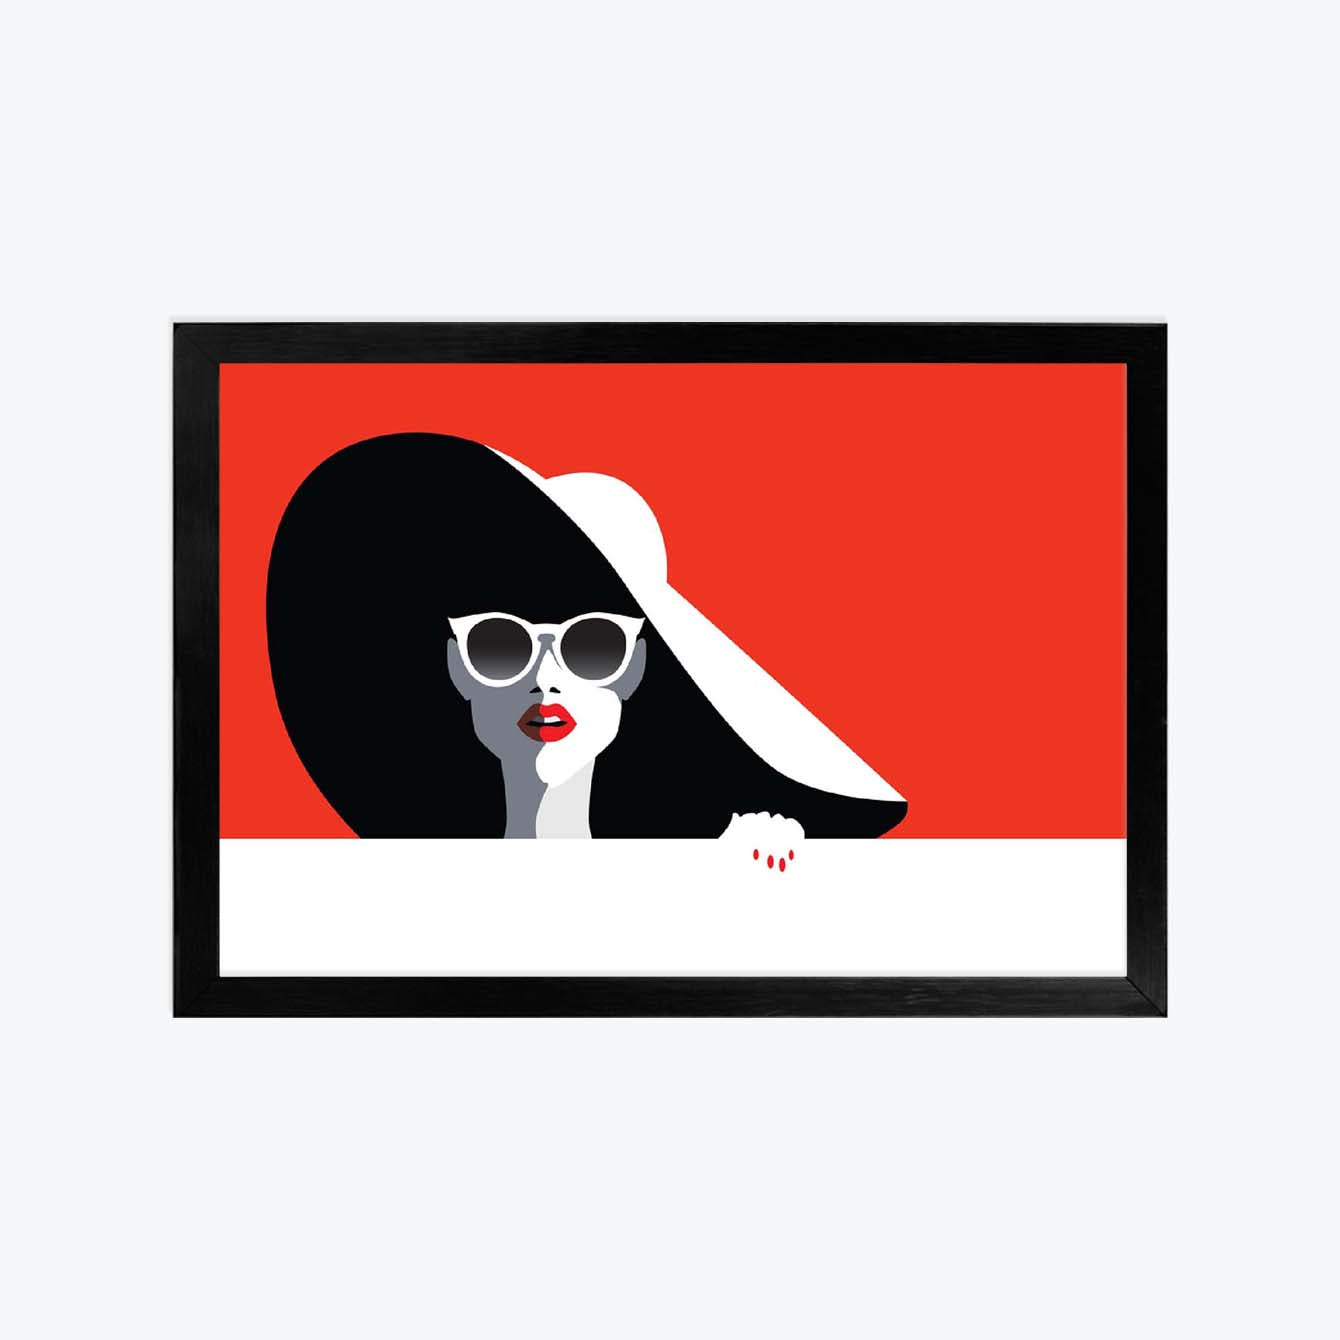 Lady Pop Art Glass Framed Posters & Artprints